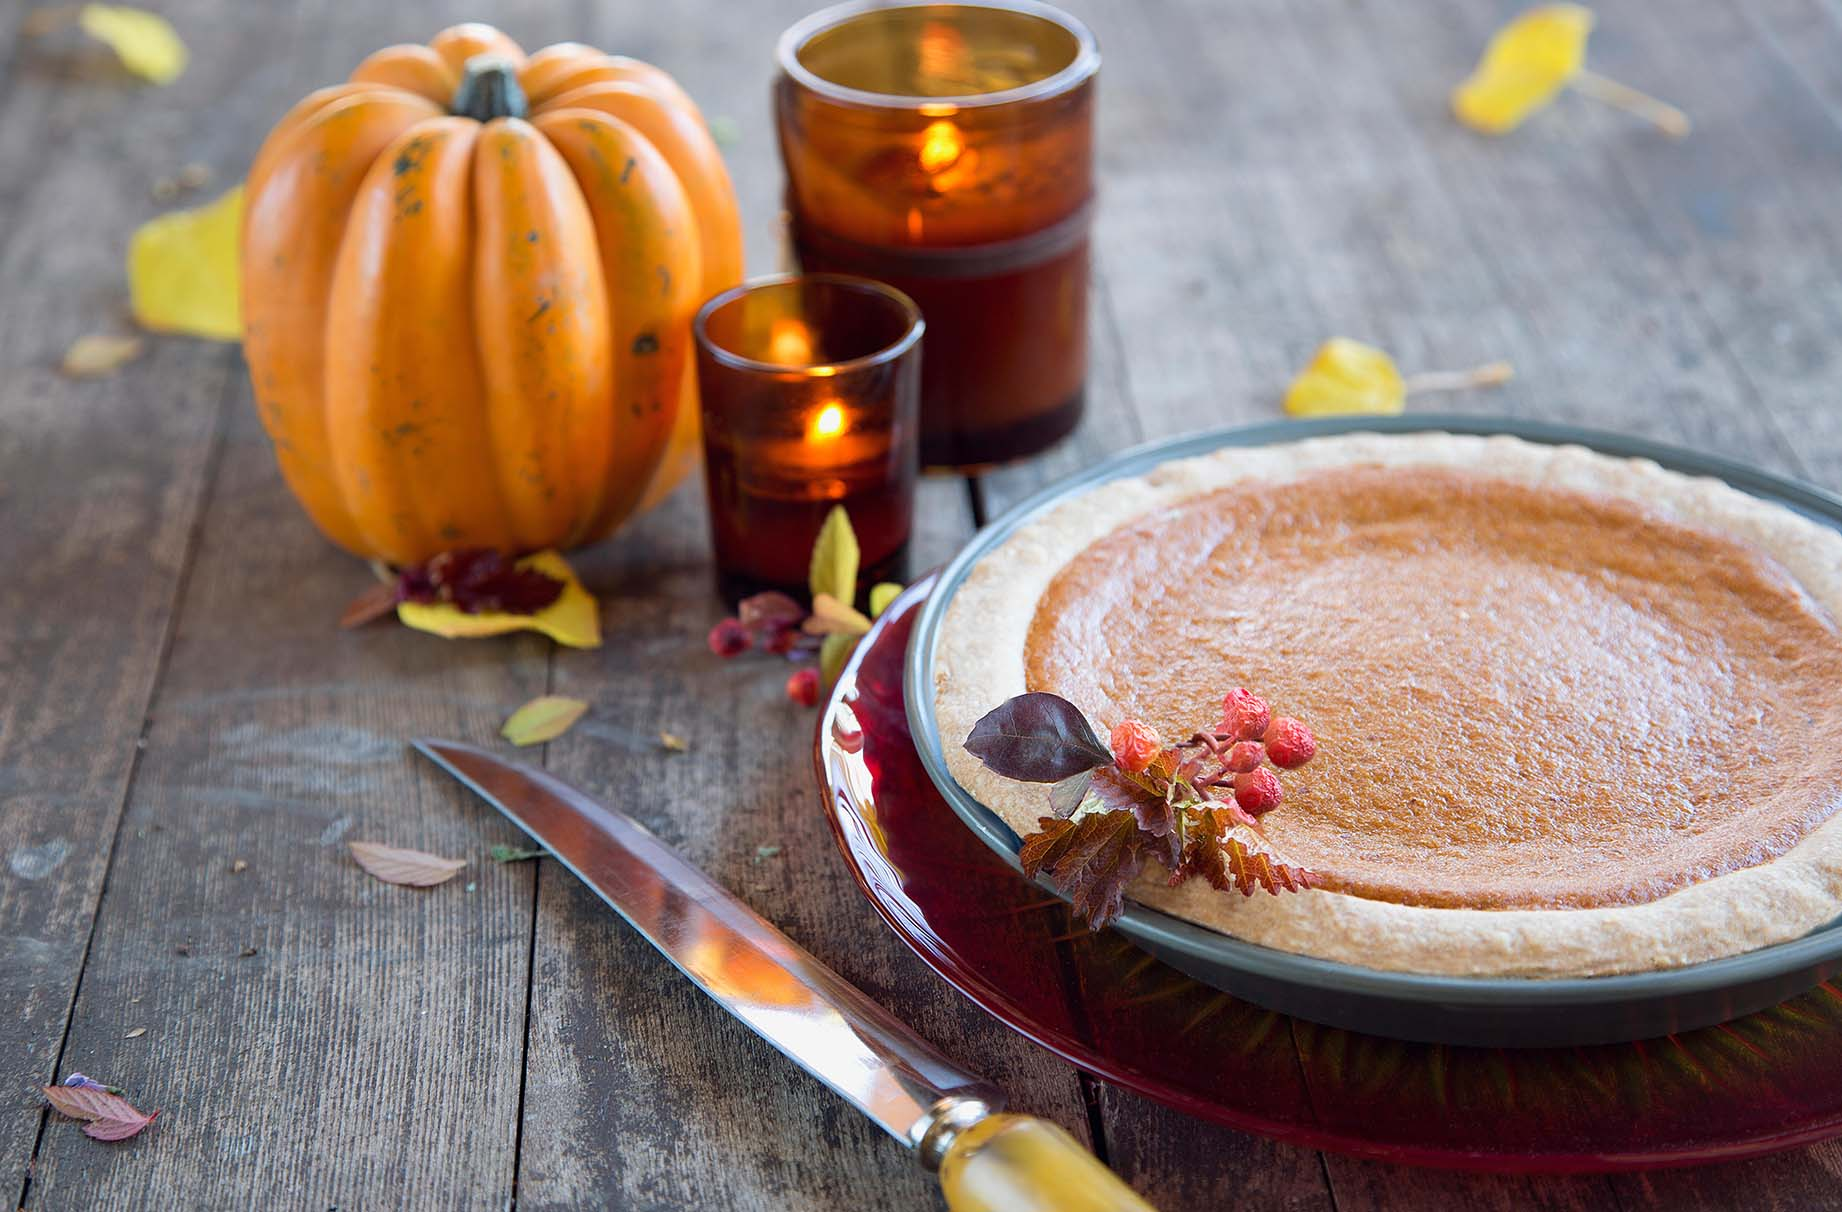 15 impressive recipes you need to try to create the tastiest Thanksgiving feast